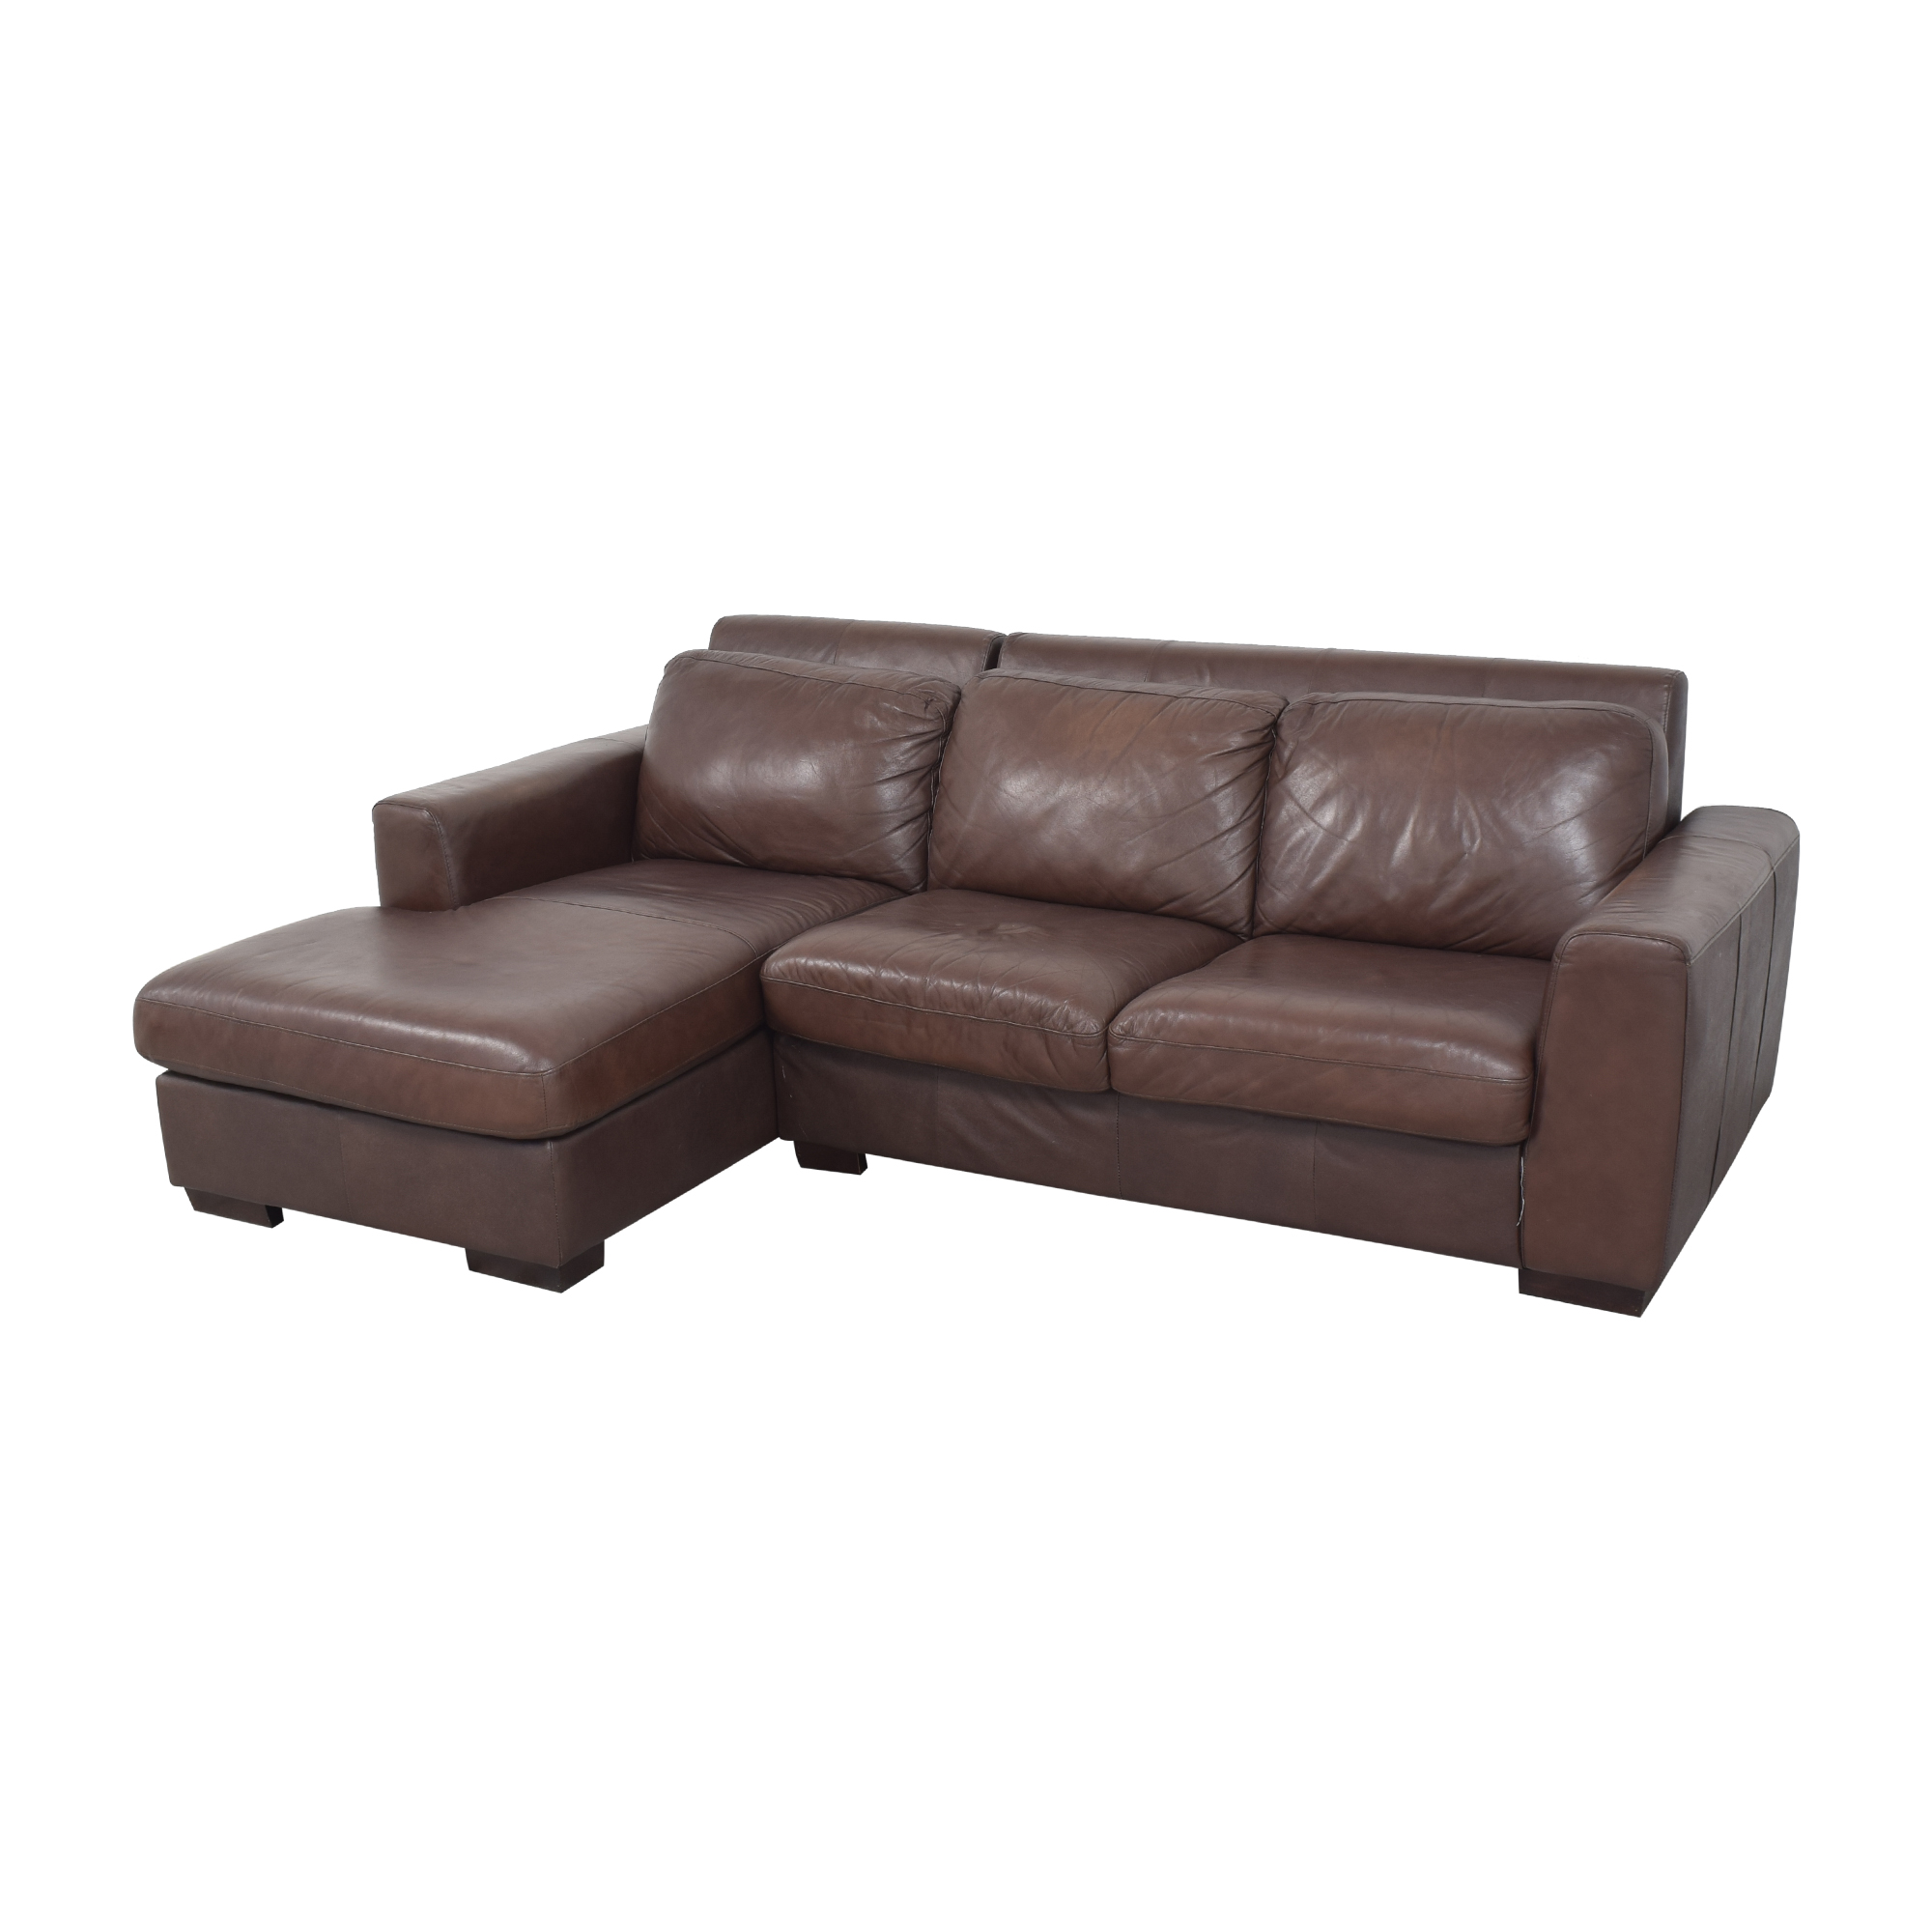 shop Costco Costco Layla Sectional Sofa with Ottoman online